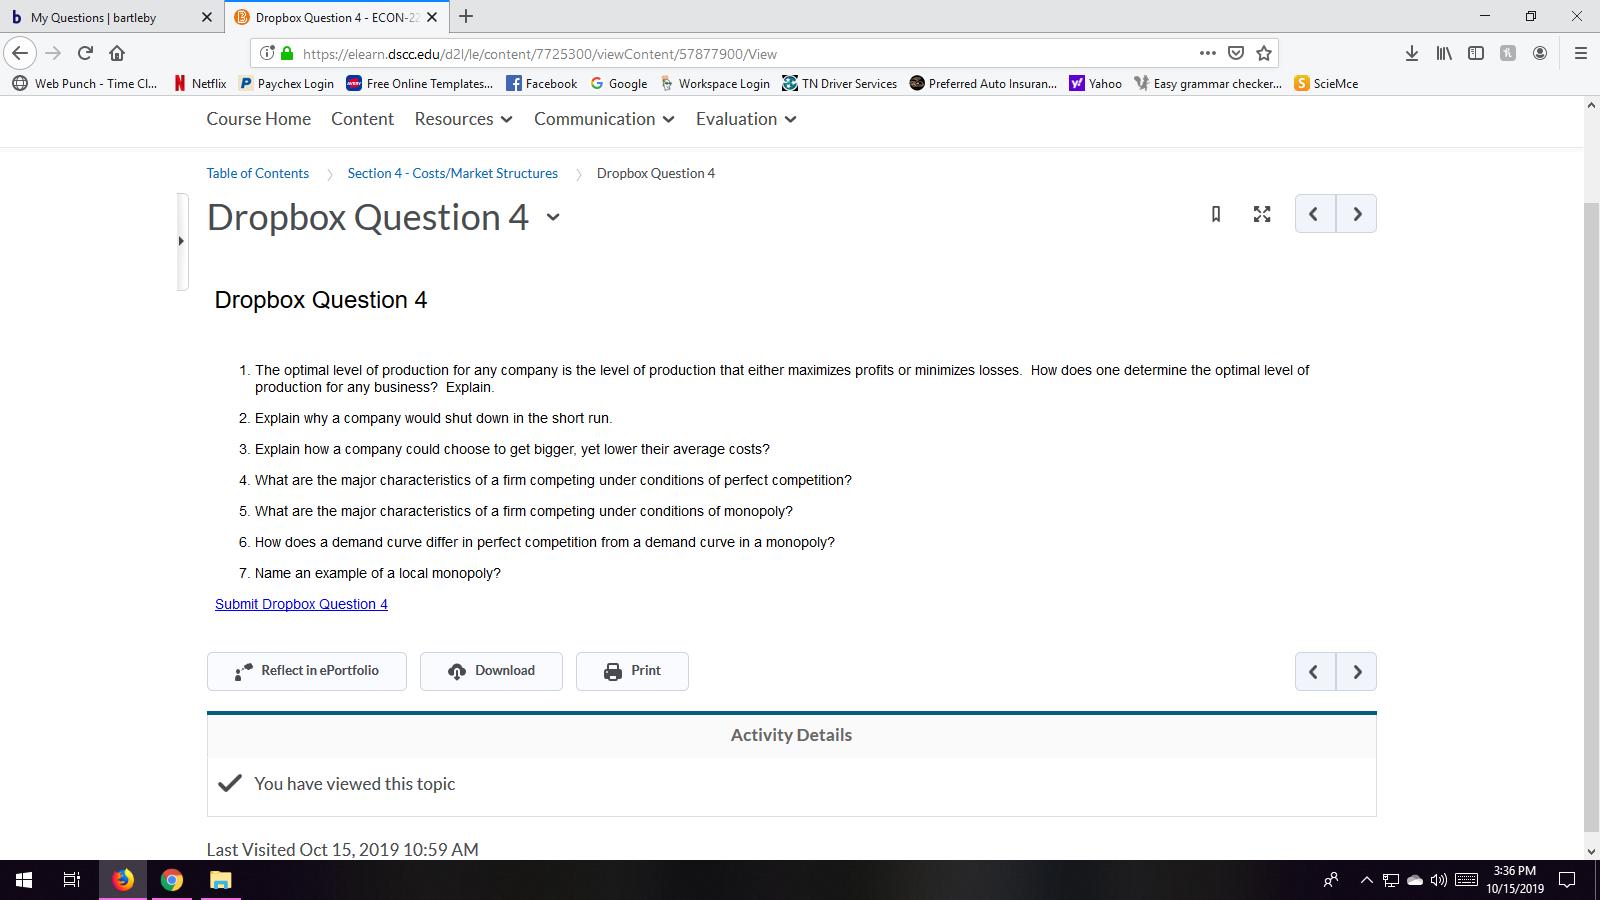 b My Questions | bartleby Dropbox Question 4- ECON-22 x IED https://elearn.dscc.edu/d2l/le/content/7725300/viewContent/57877900/View Free Online Templates... fFacebook N Netflix P Paychex Login Workspace LoginTN Driver Services y Yahoo Easy grammar checker... G Google Web Punch - Time Cl... Preferred Auto Insuran... S ScieMce Course Home Content Resources Communication Evaluation Table of Contents Dropbox Question 4 Section 4-Costs/Market Structures Dropbox Question 4 A < Dropbox Question 4 1. The optimal level of production for any company is the level of production that either maximizes profits or minimizes losses. How does one determine the optimal level of production for any business? Explain 2. Explain why a company would shut down in the short run. 3. Explain how a company could choose to get bigger, yet lower their average costs? 4. What are the major characteristics of a firm competing under conditions of perfect competition? 5. What are the major characteristics of a firm competing under conditions of monopoly? 6. How does a demand curve differ in perfect competition from a demand curve in a monopoly? 7. Name an example of a local monopoly? Submit Dropbox Question 4 Reflect in ePortfolio Download Print < Activity Details You have viewed this topic Last Visited Oct 15, 2019 10:59 AM 3:36 PM ^ 10/15/2019